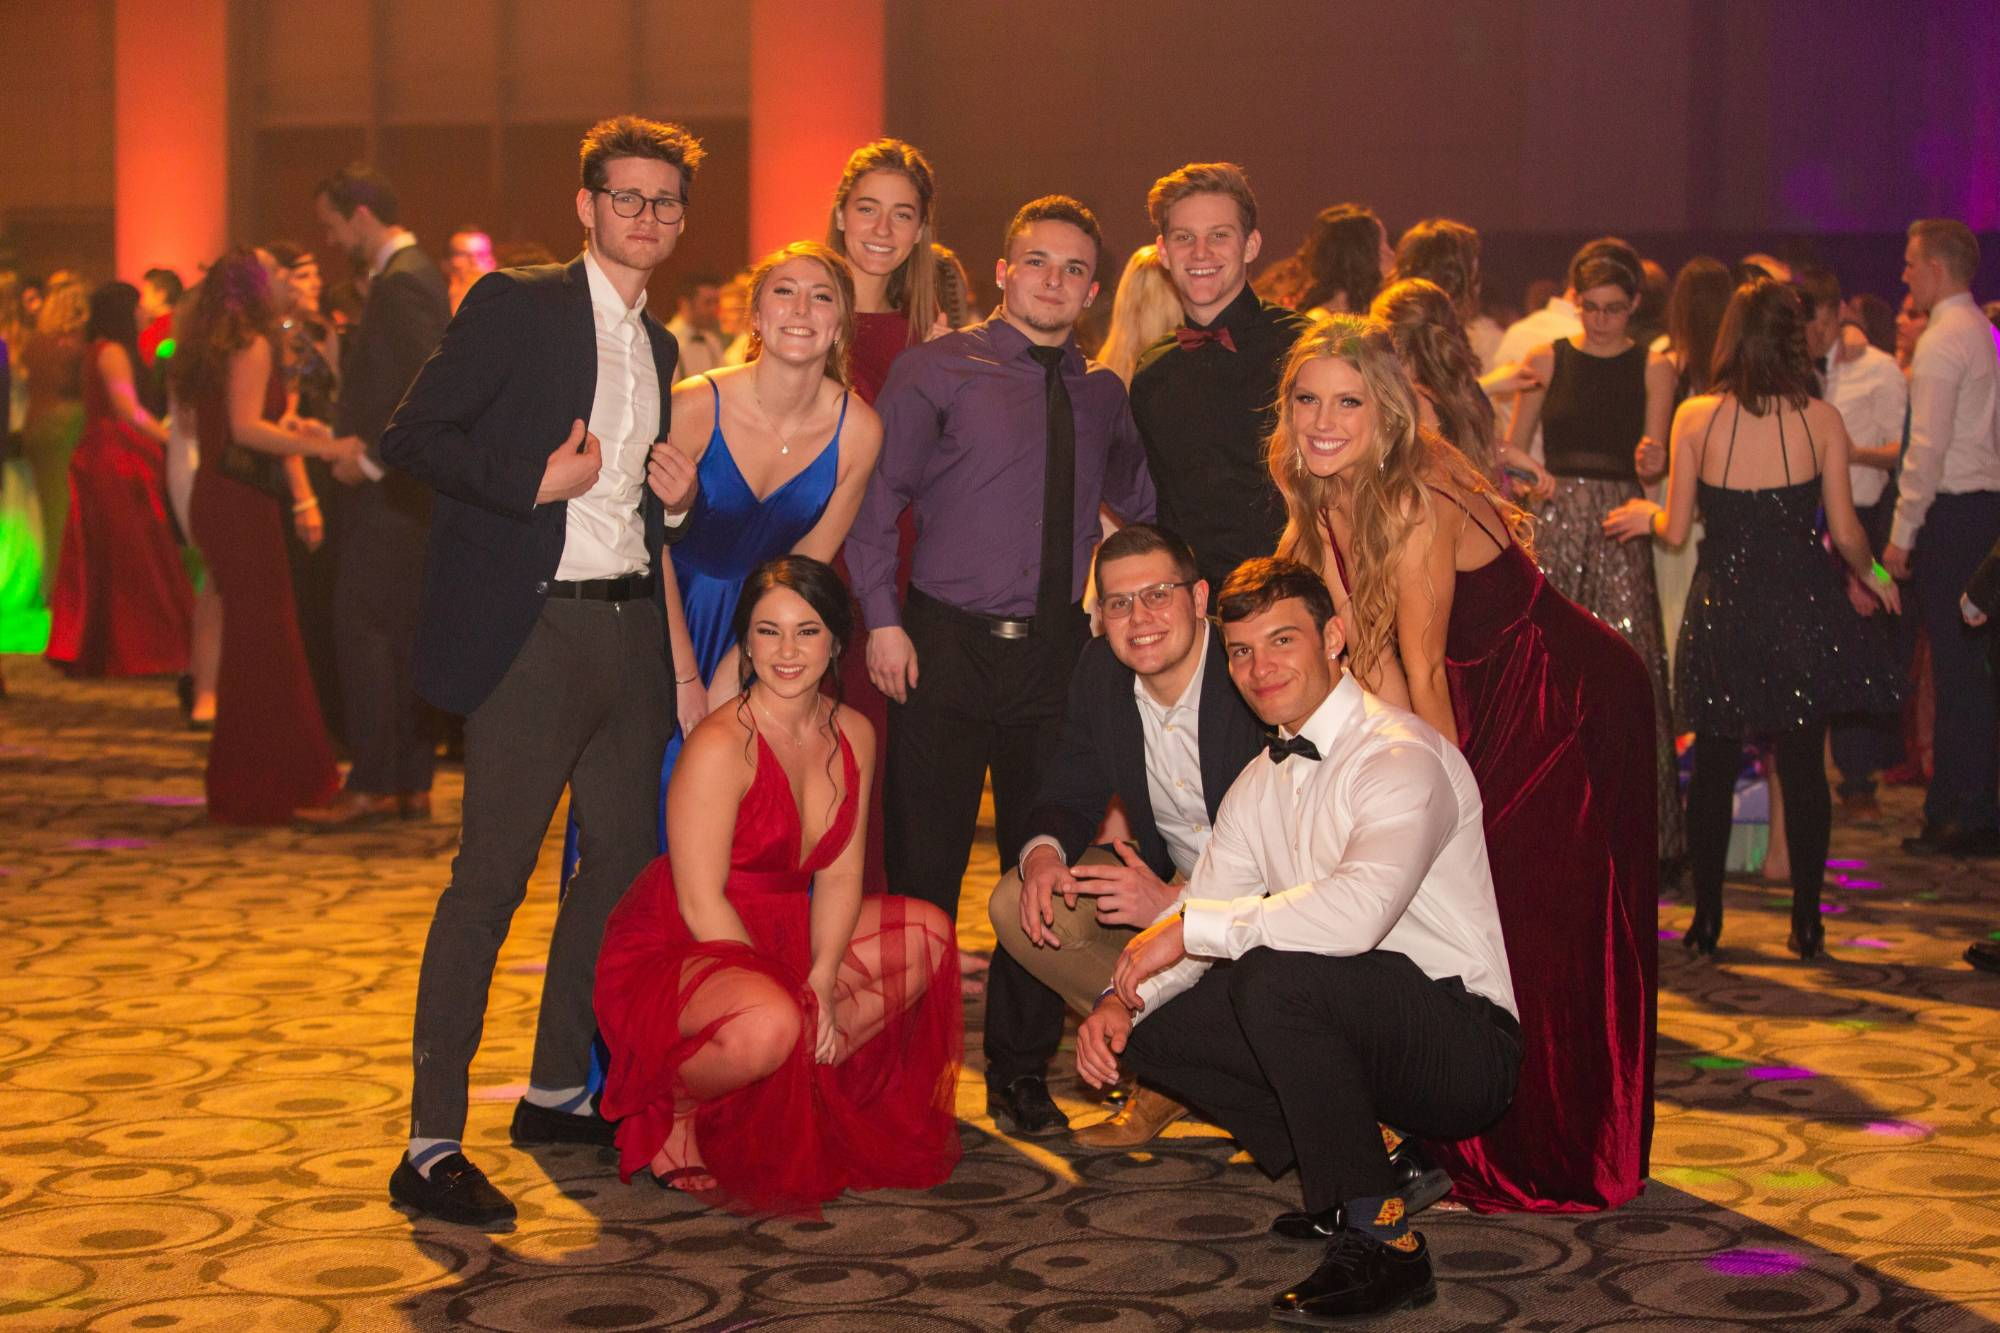 Students at president's ball posing for a group picture